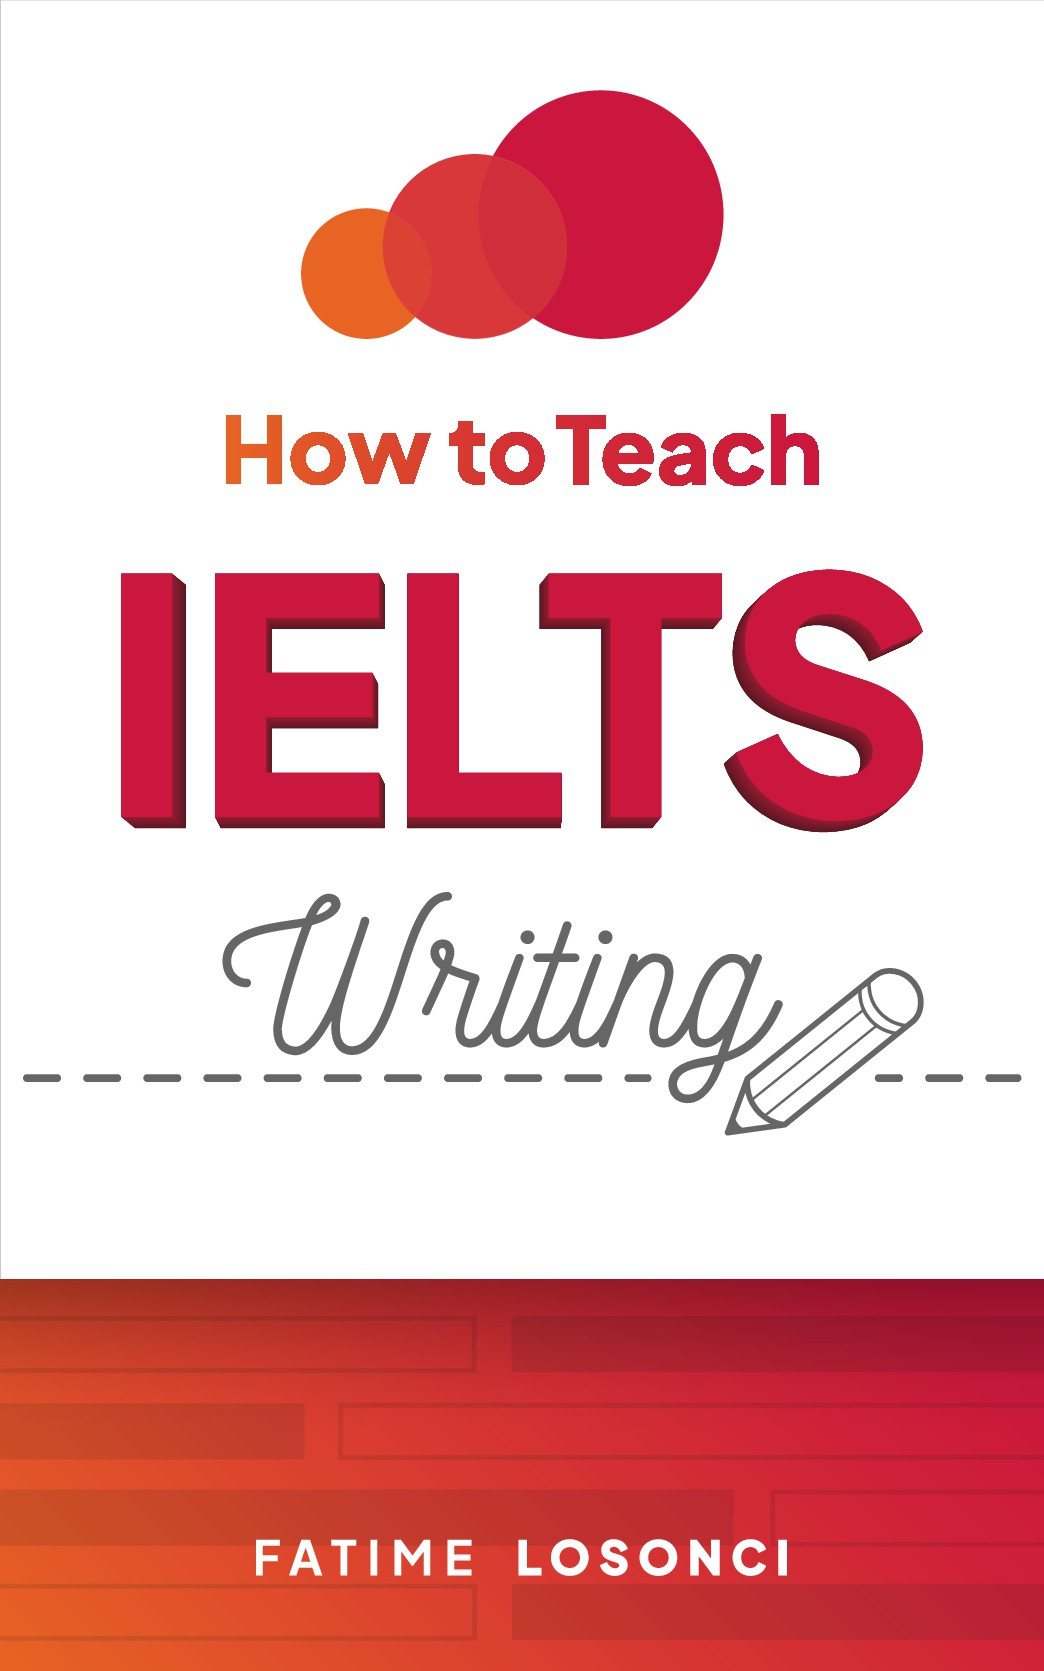 I need a modern, vectorial cover design for an e-book preparing people for an English Language exam